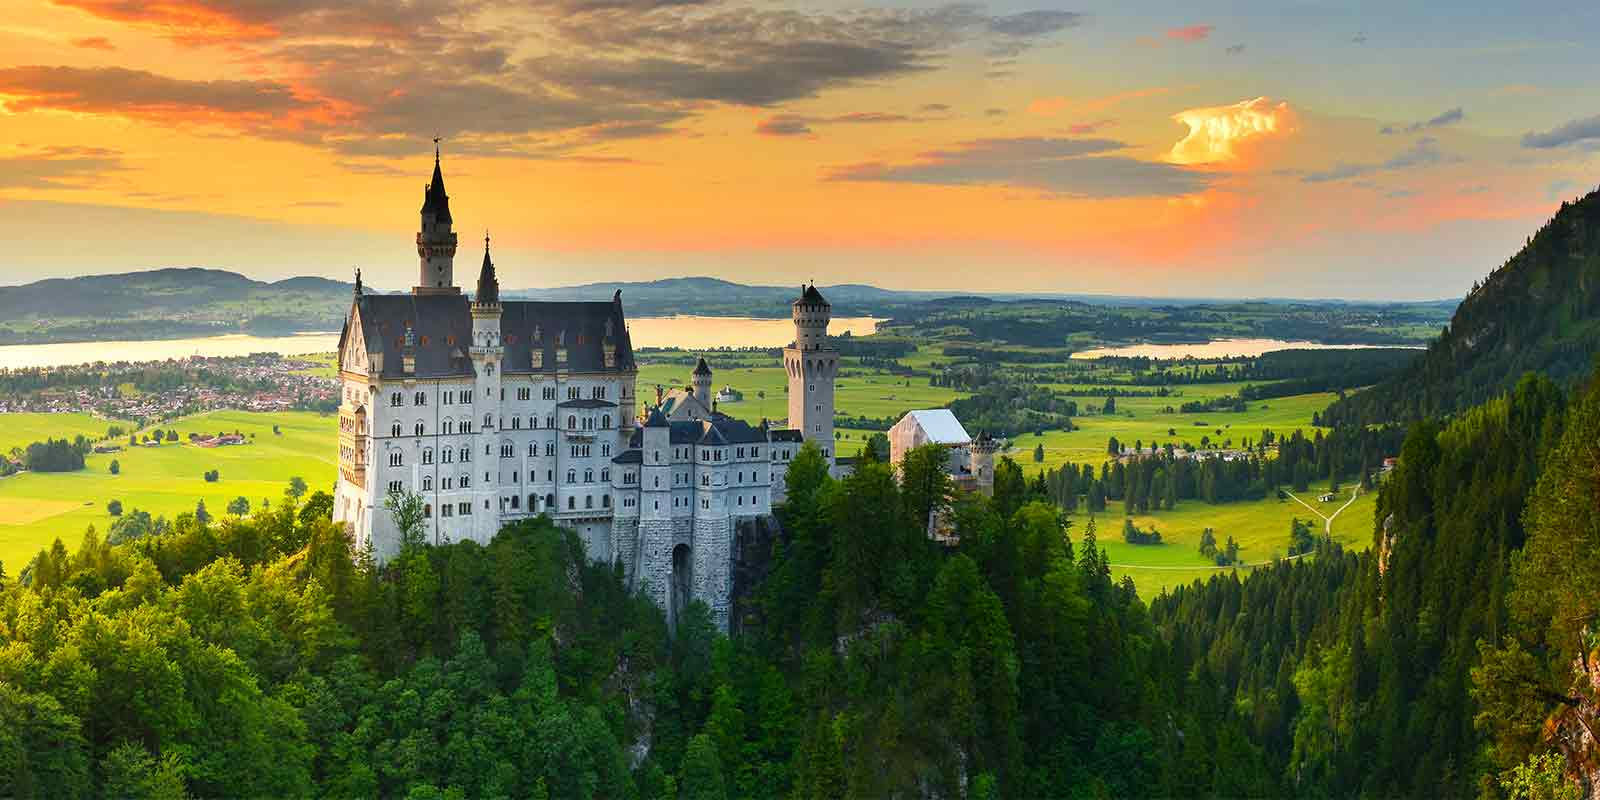 Neuschwanstein Castle in Bavaria at sunset